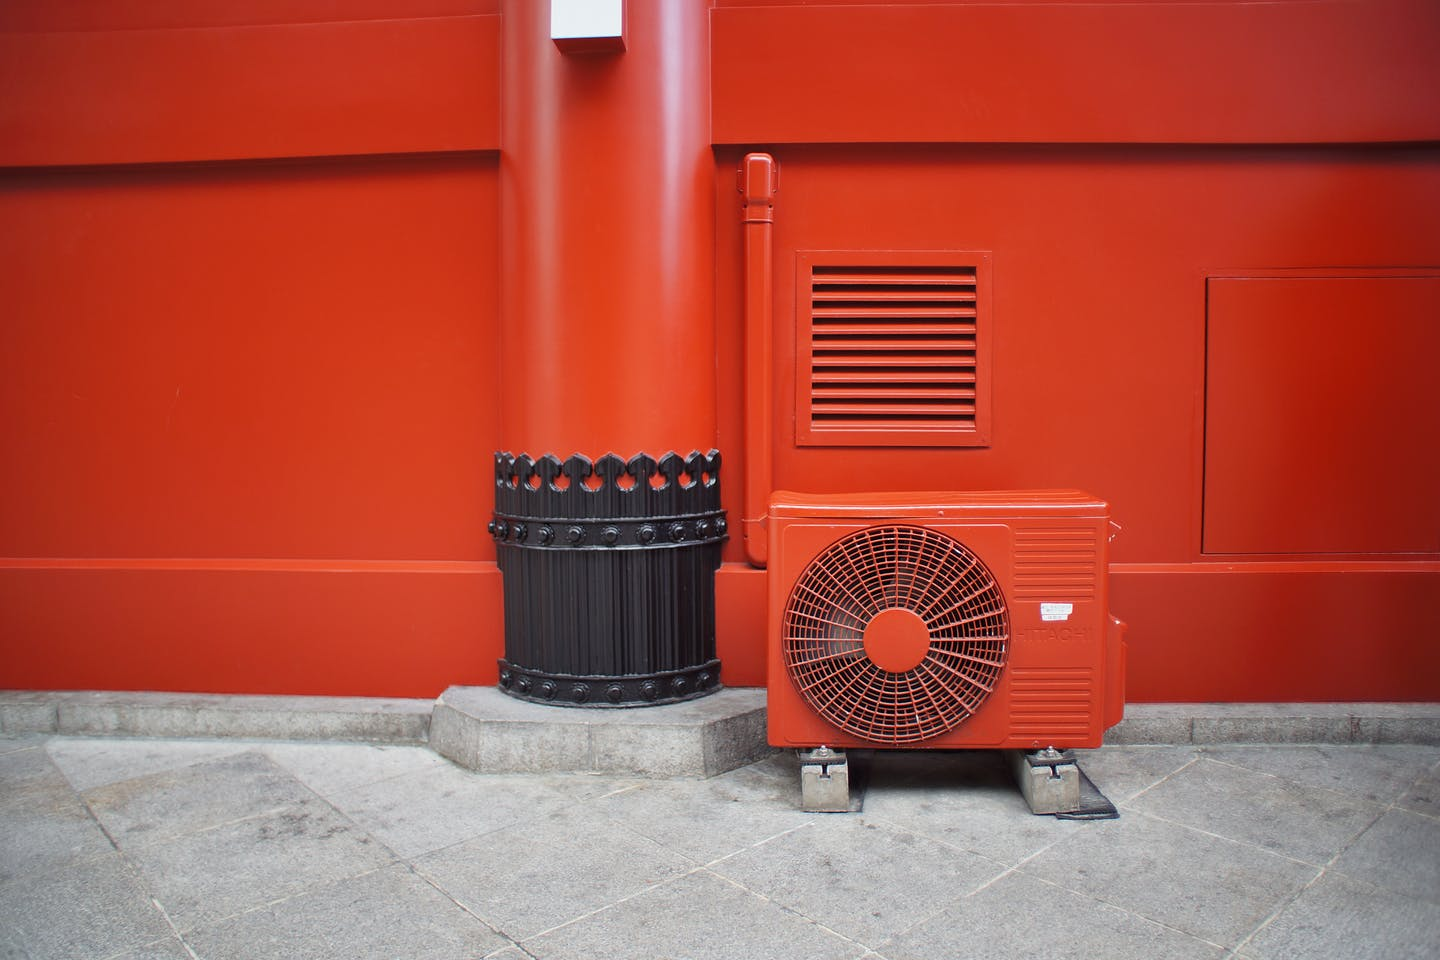 An air conditioning unit installed at Senso-ji, Tokyo's oldest temple.